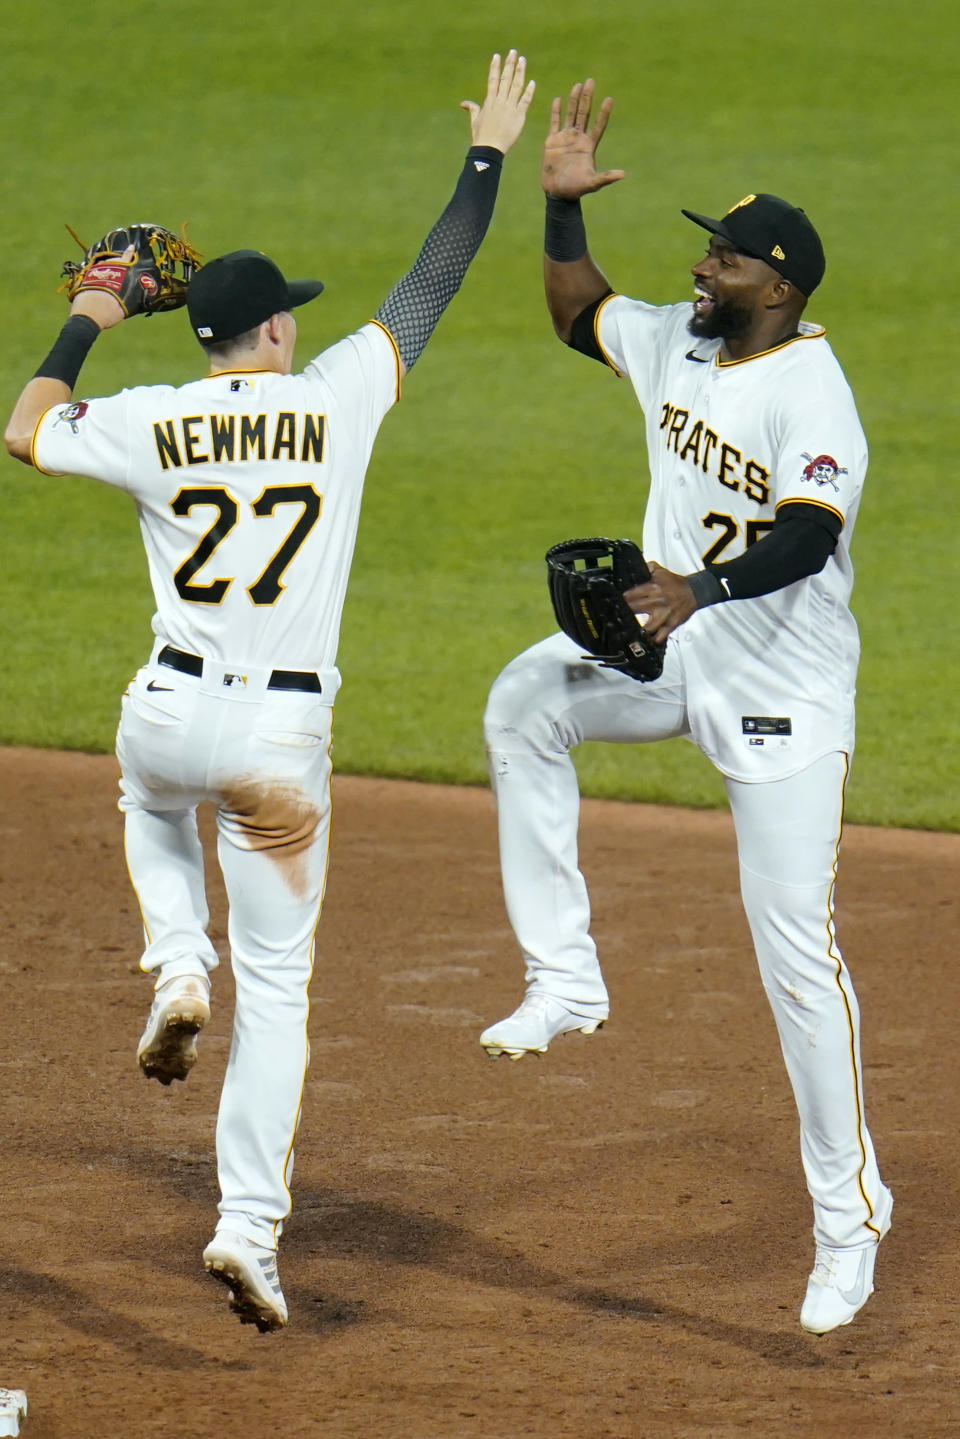 Pittsburgh Pirates' Kevin Newman, left, celebrates with Gregory Polanco, right, after getting the final out of a baseball game against the Chicago White Sox in Pittsburgh, Tuesday, June 22, 2021. (AP Photo/Gene J. Puskar)